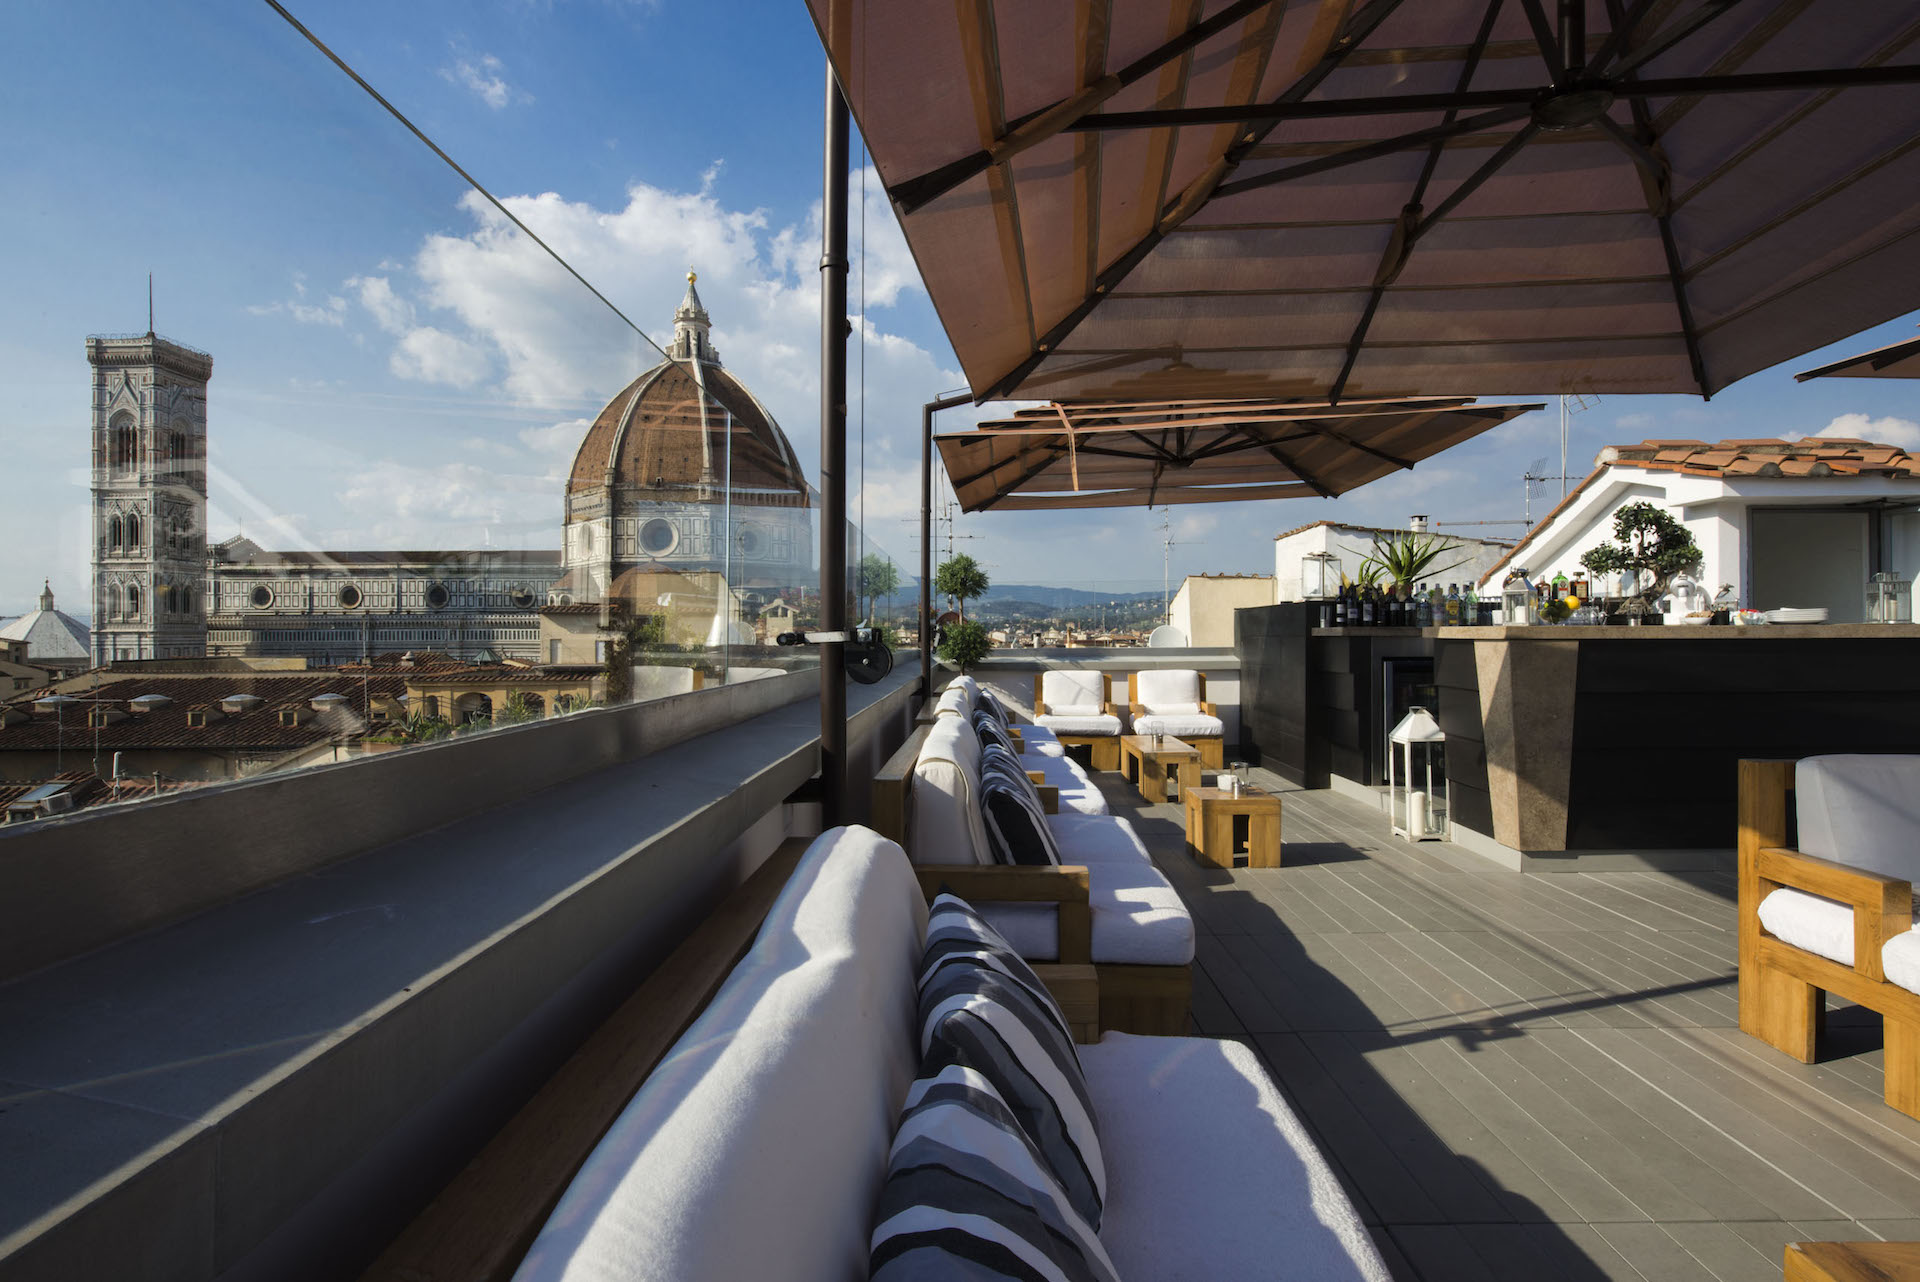 Awesome Terrazza Excelsior Firenze Contemporary - Design and Ideas ...